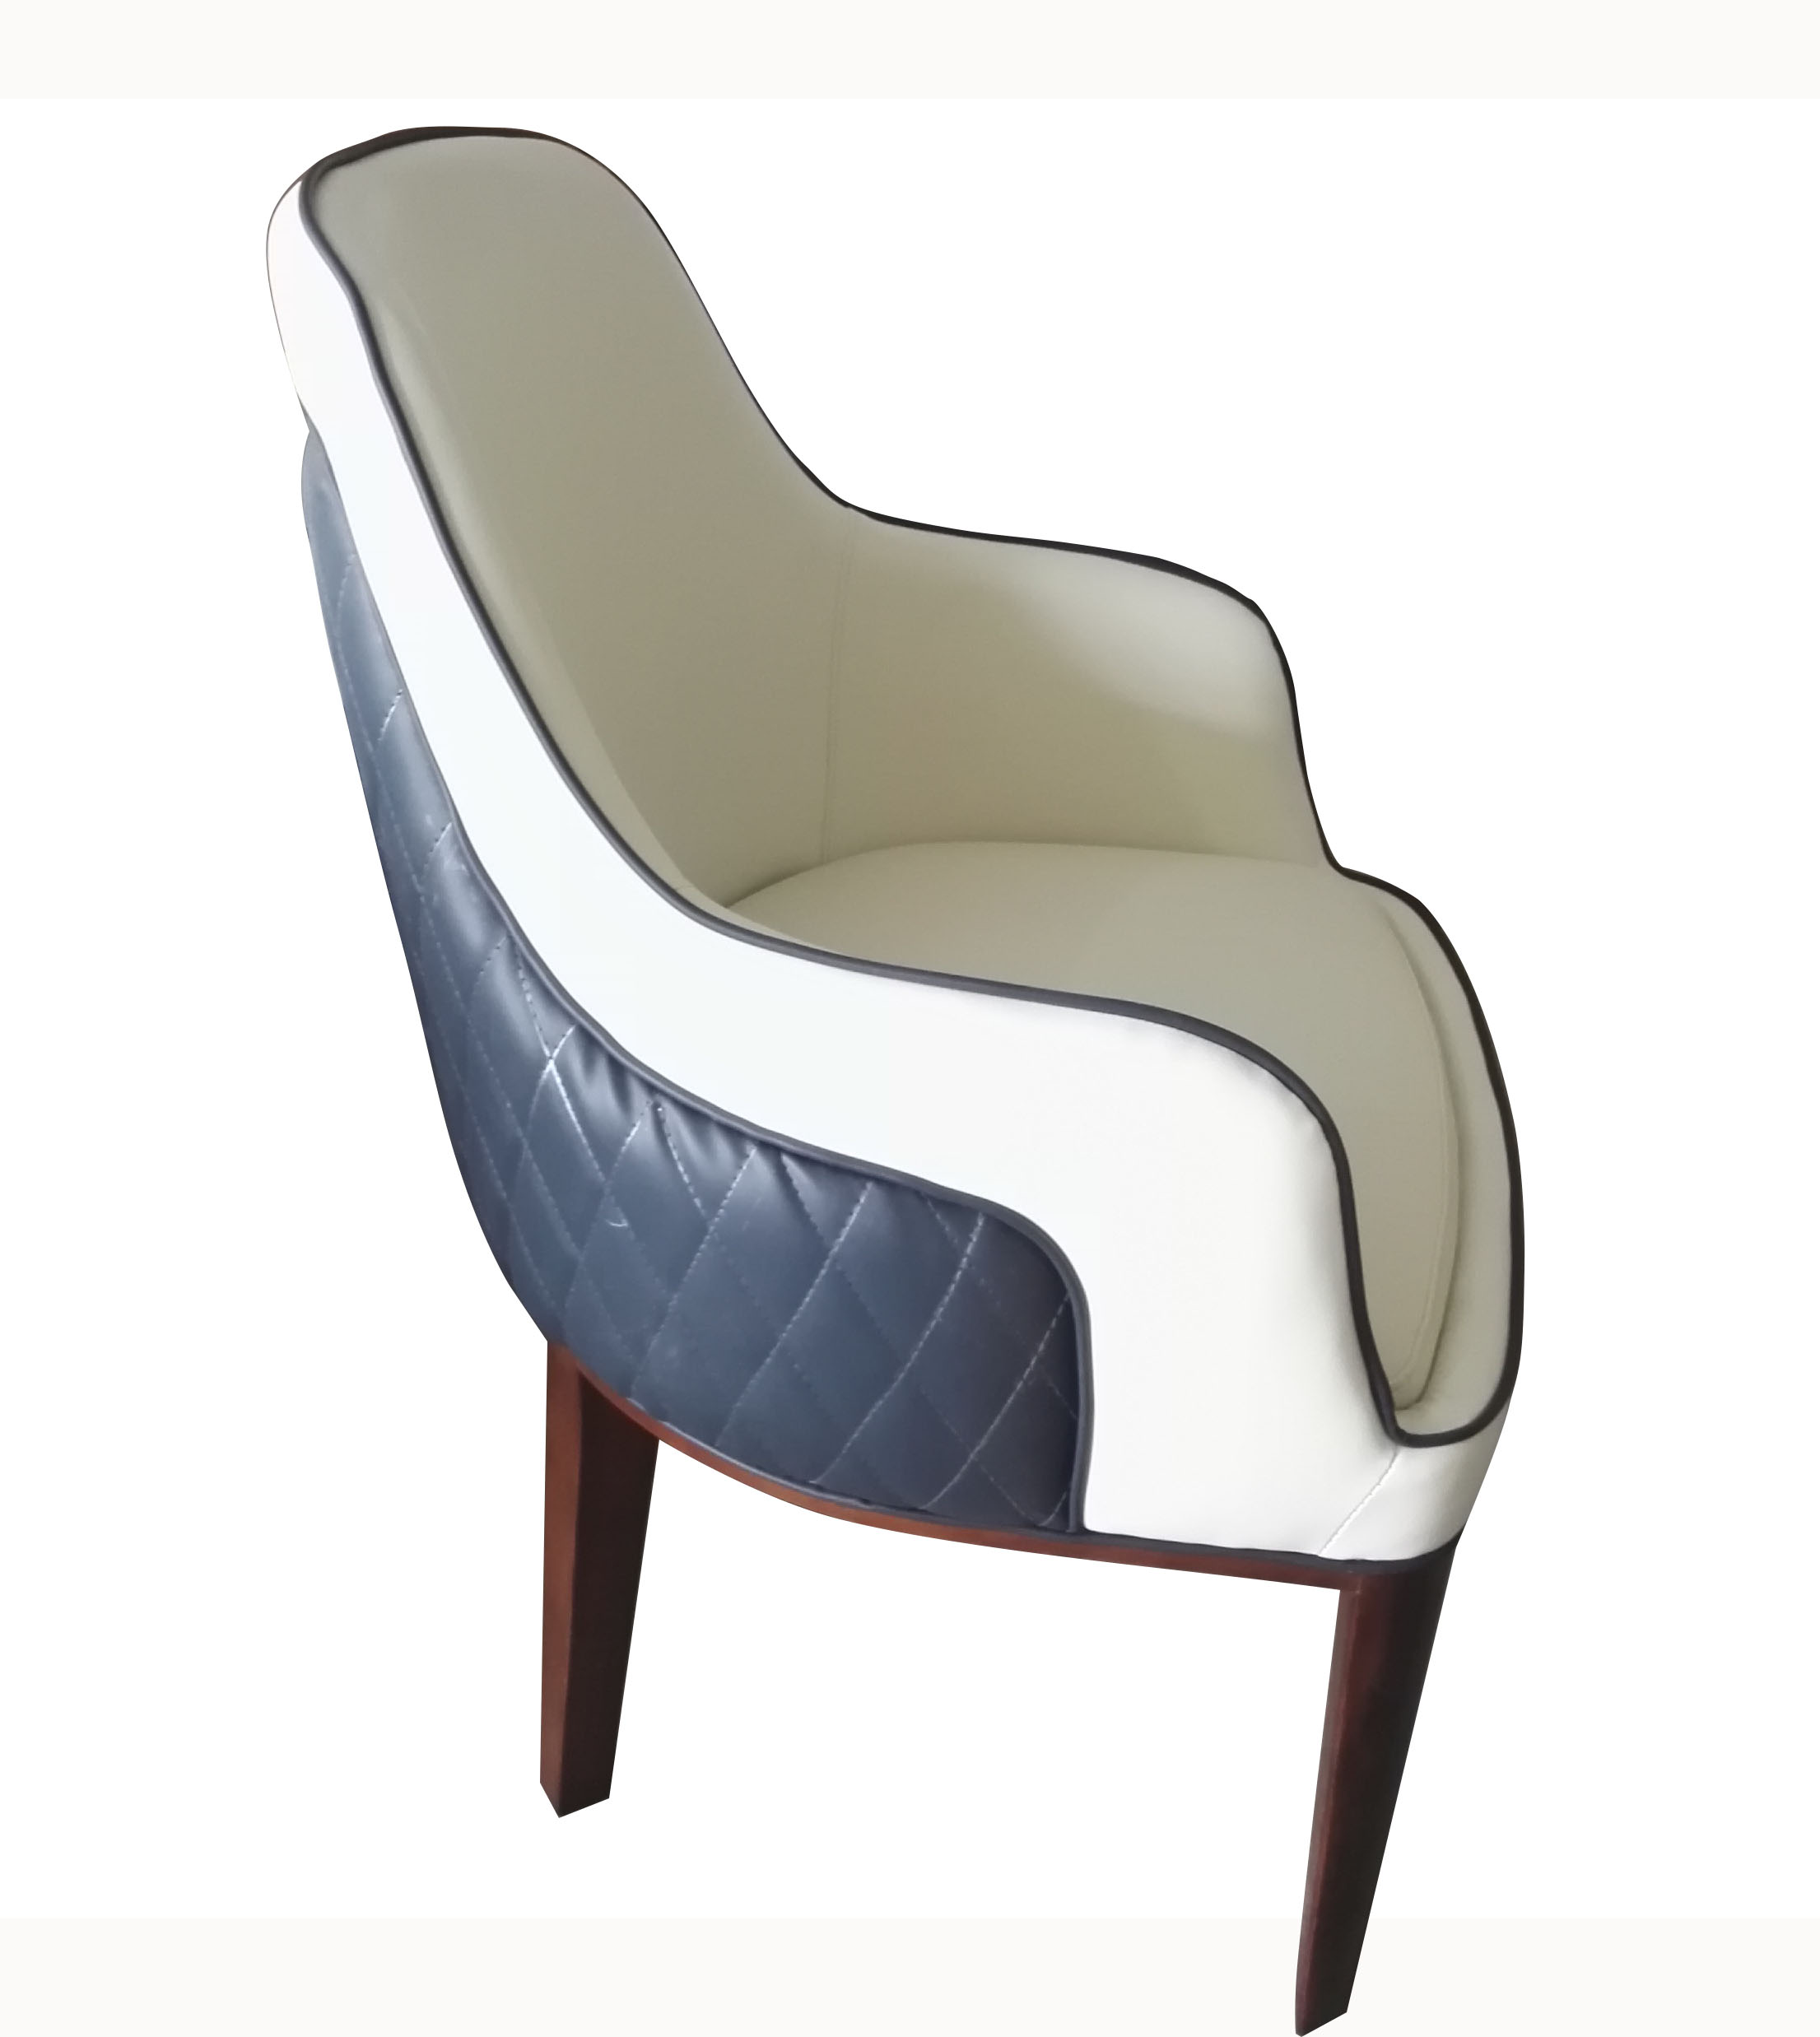 Phenomenal Modern Dining Chair Luxury Throne Gold Chairs For Sale Used Buy Royal Throne Gold Chairs Dining Room Use King Throne Chair Restaurant Chair Antique Dailytribune Chair Design For Home Dailytribuneorg